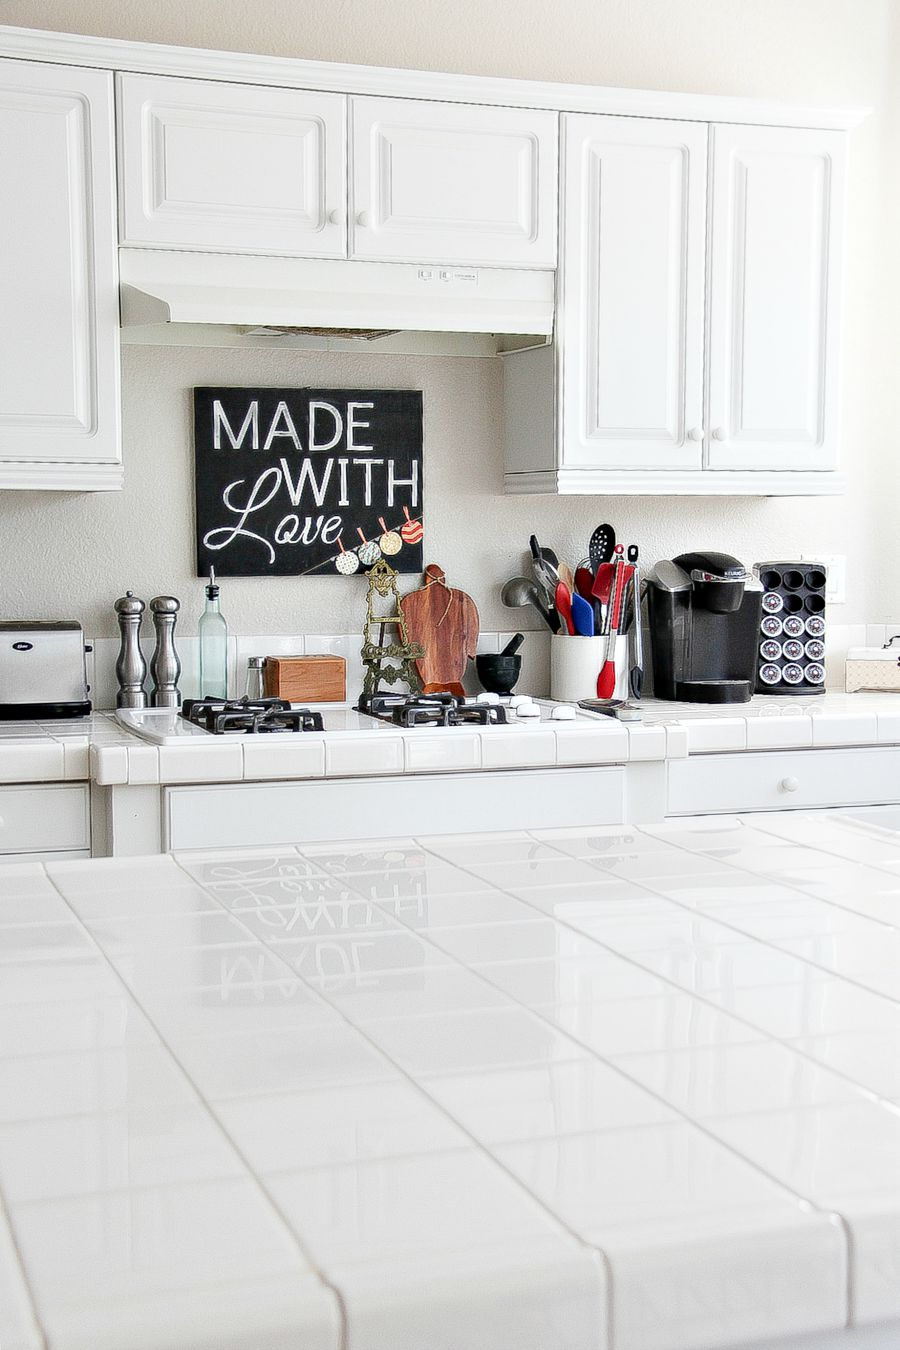 how to clean kitchen counter tile grout